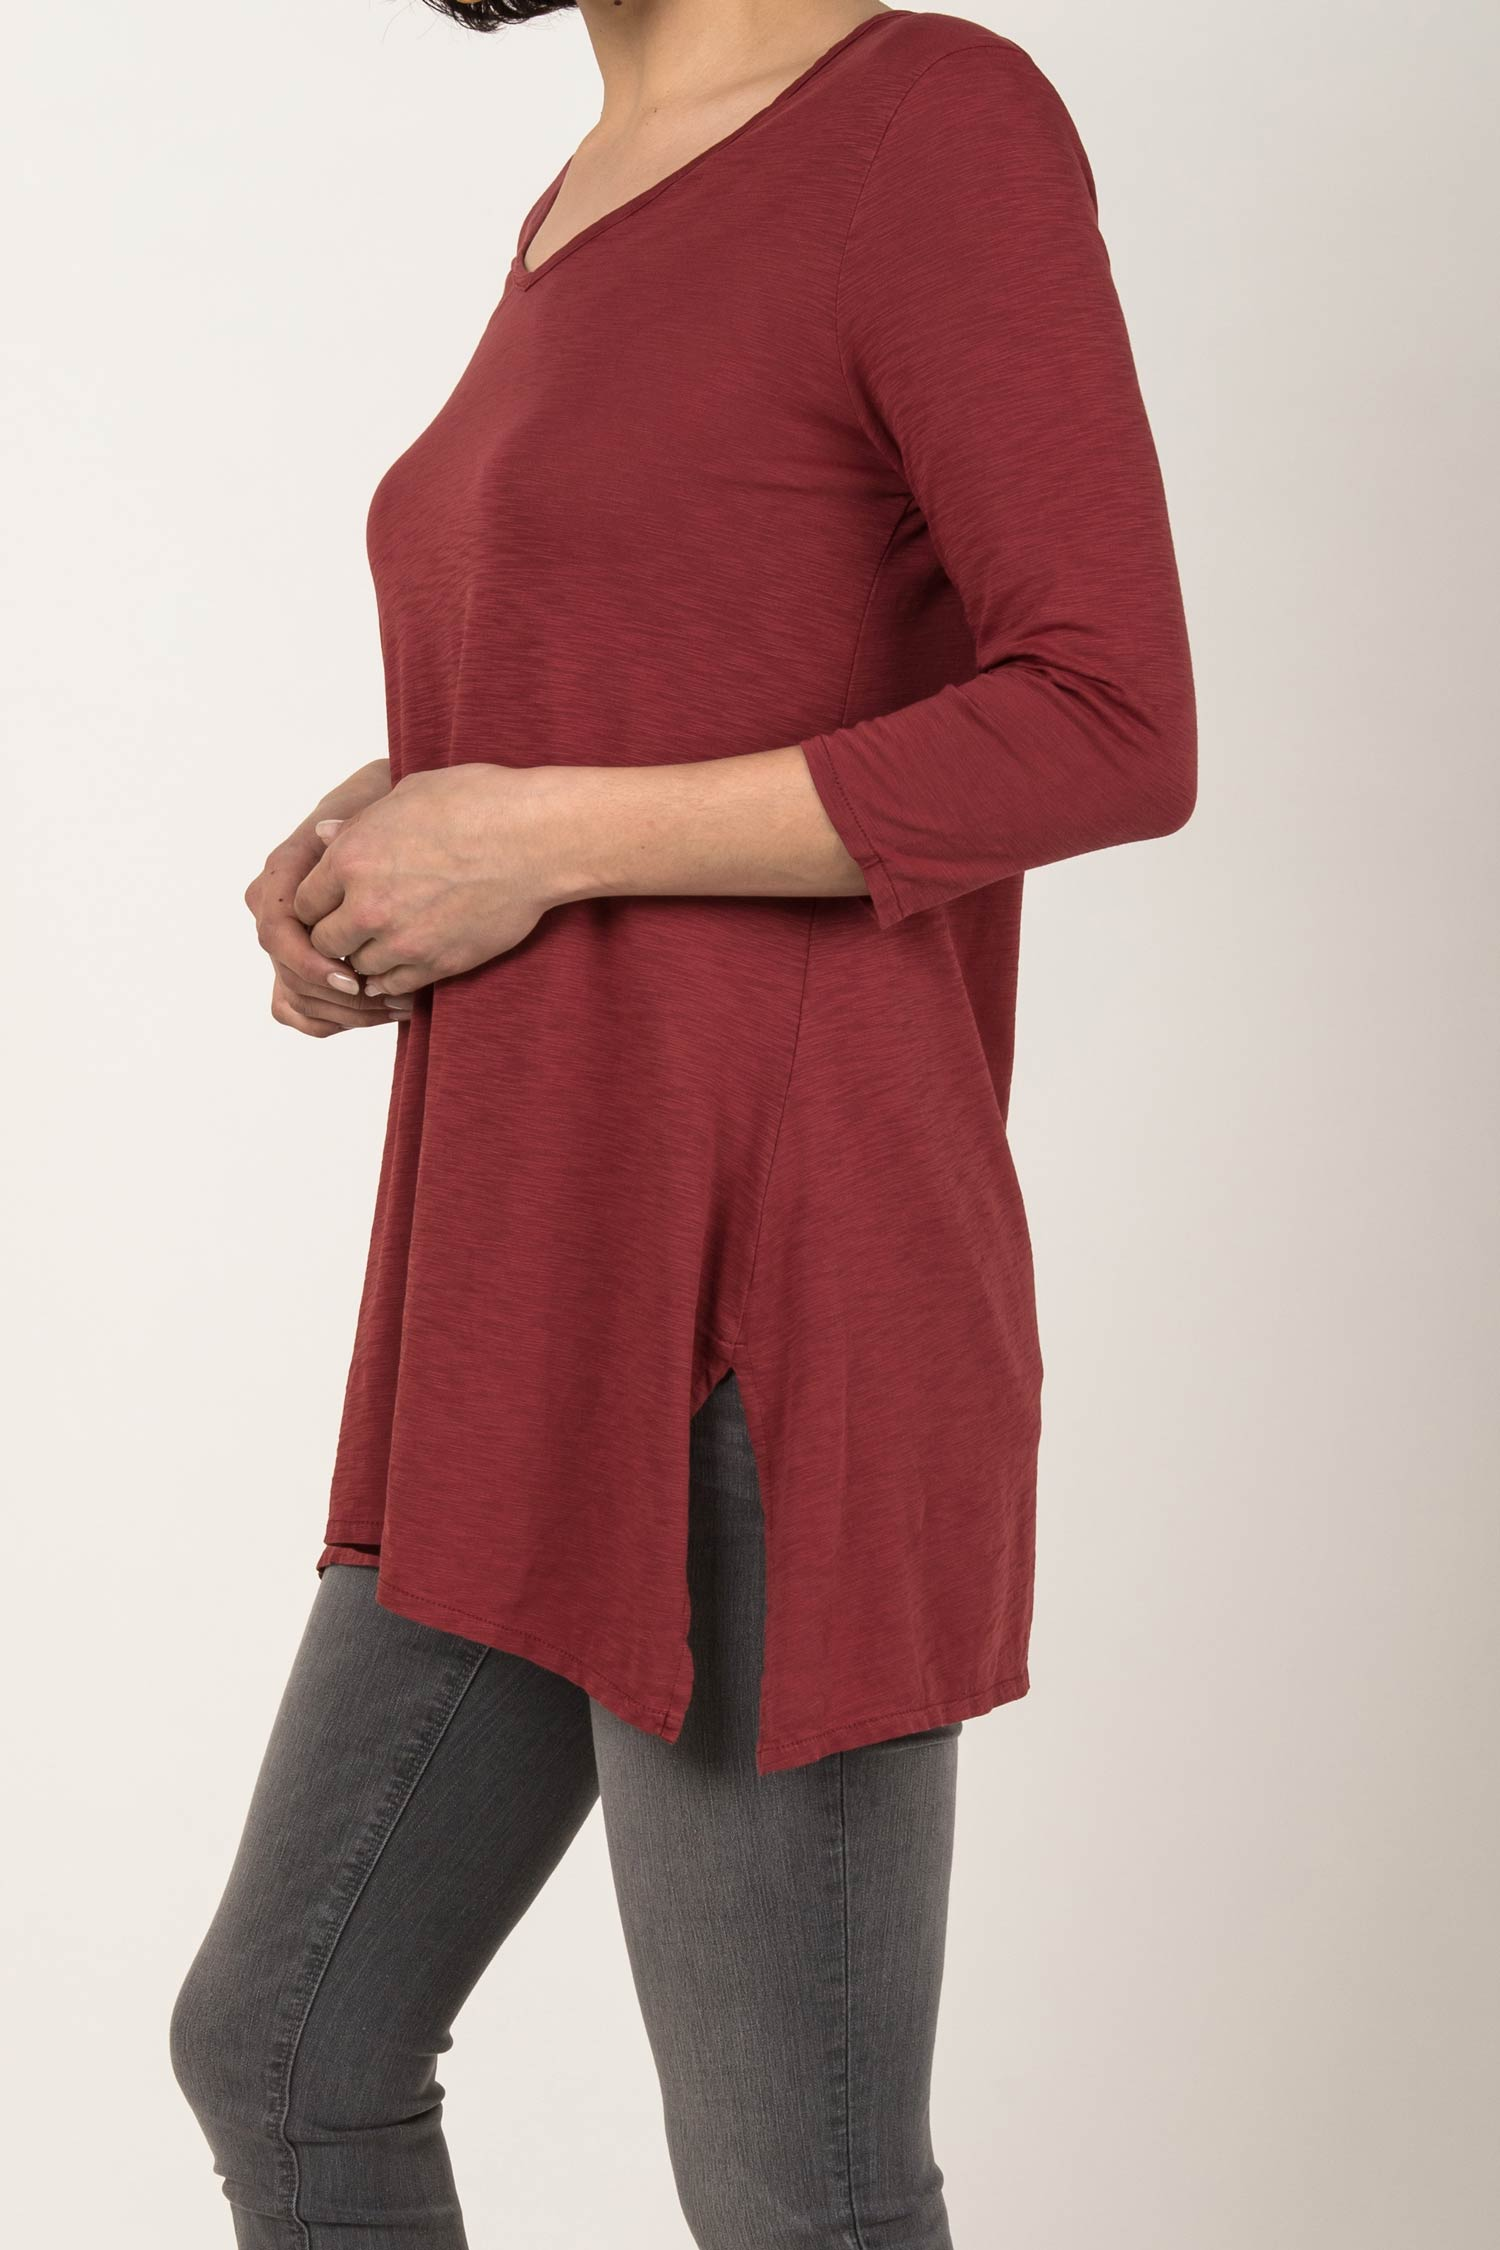 Essential Slub Tunic - Indigenous